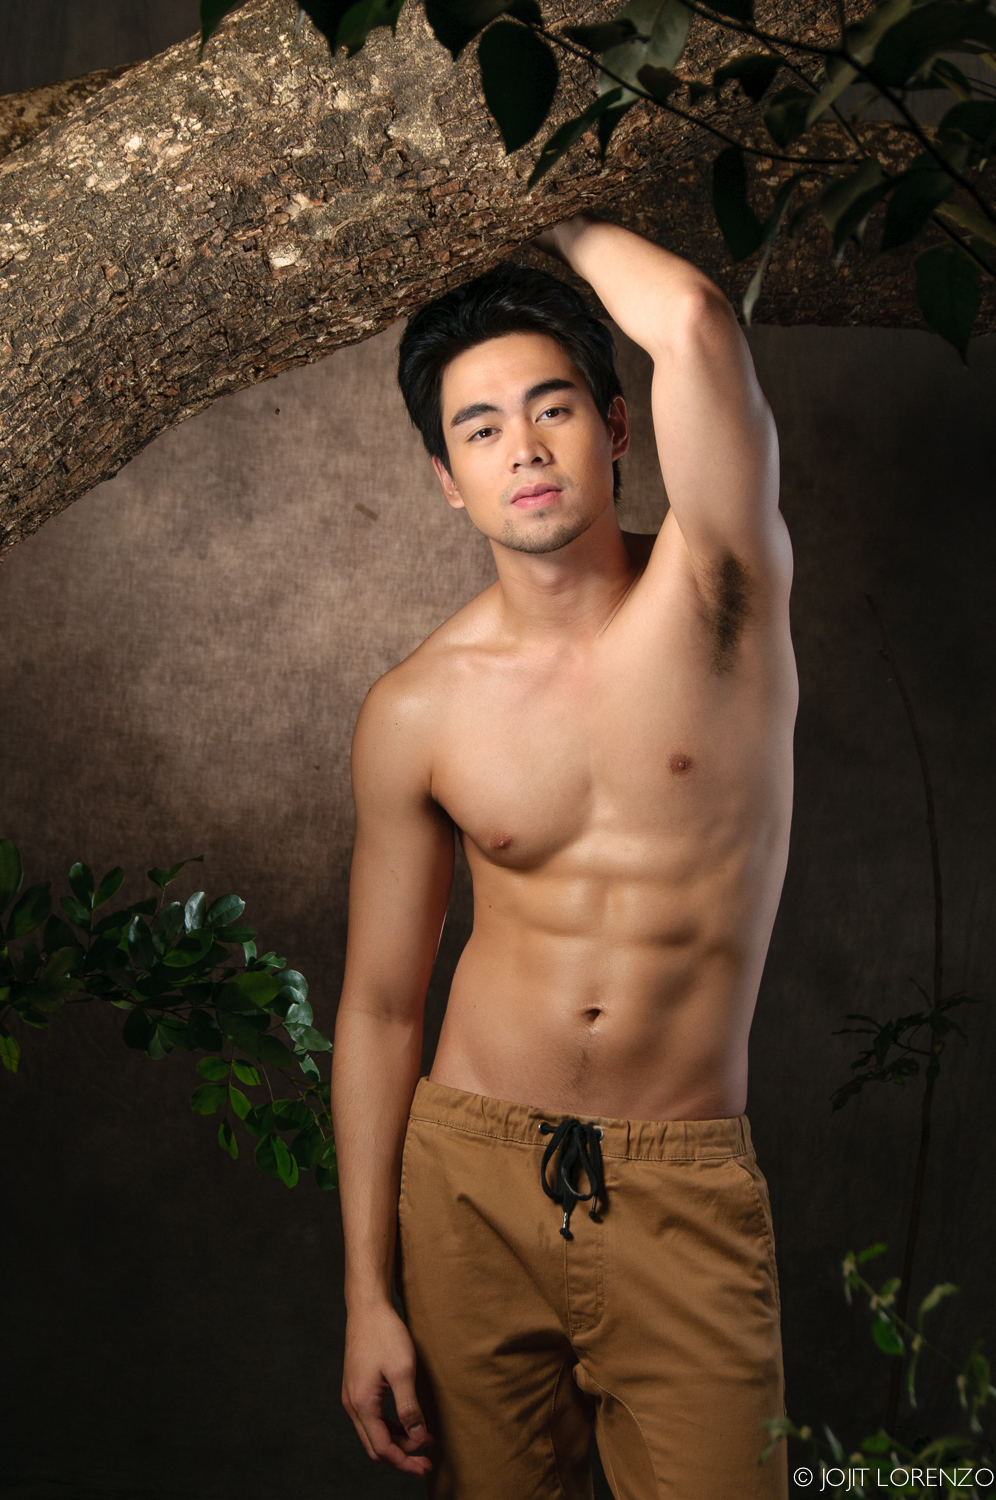 image Pinoy gay new sex stories besides their